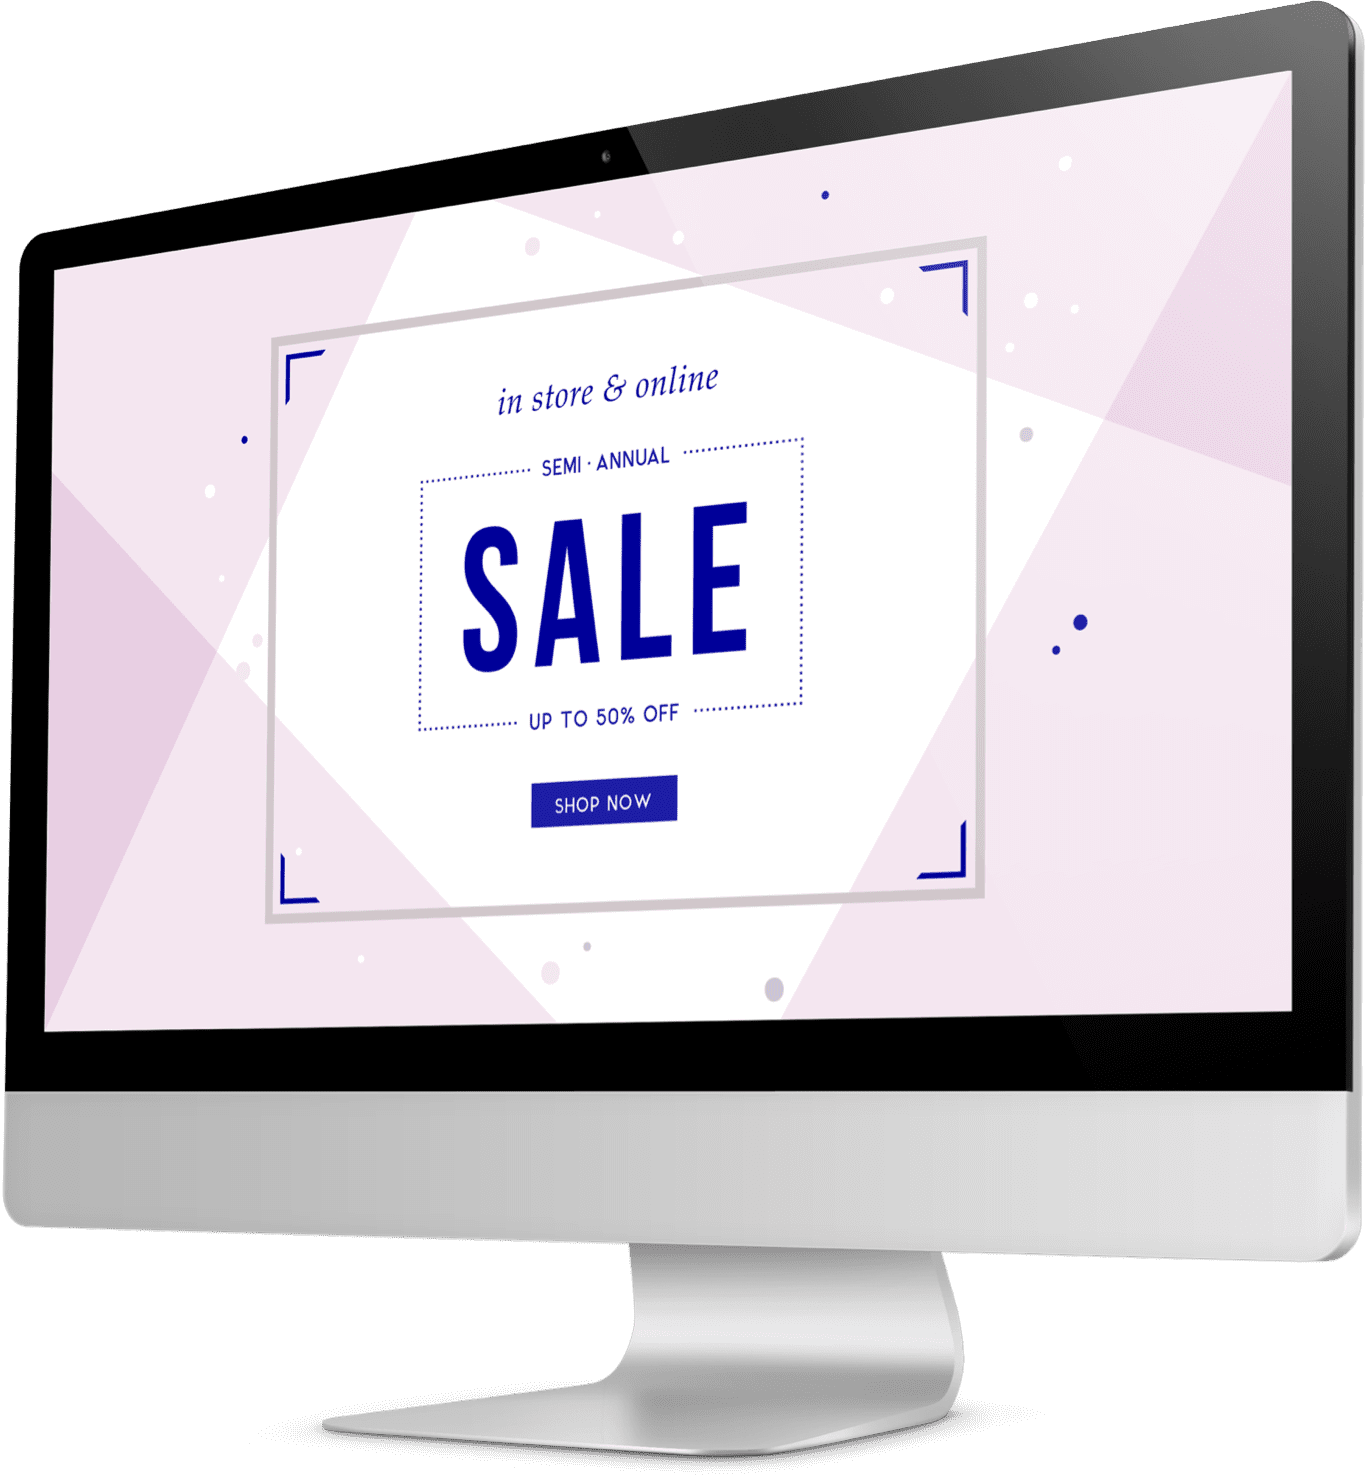 Semi-annual sales announcement on an apparel company's website shown on a monitor